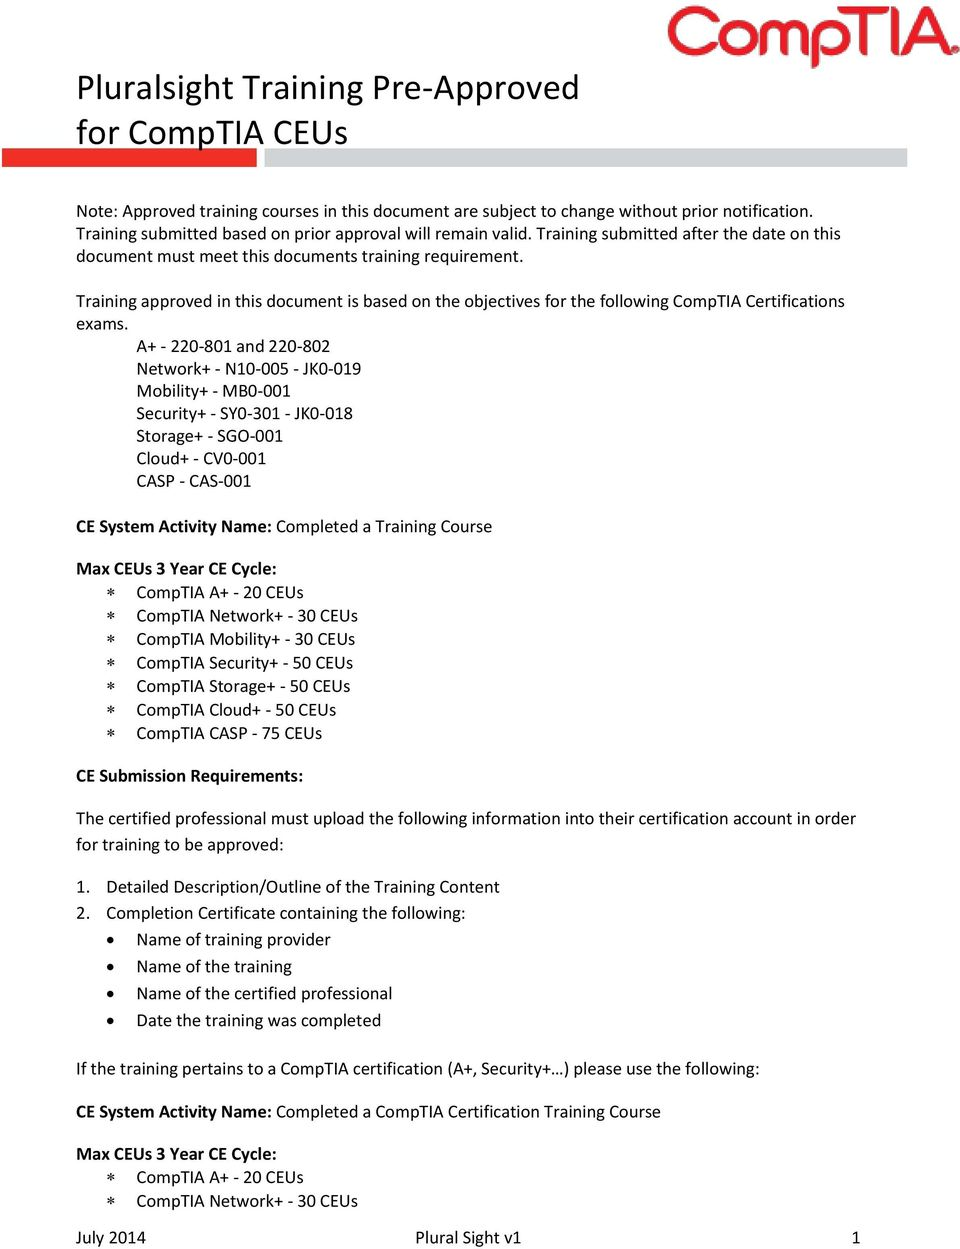 Training approved in this document is based on the objectives for the following CompTIA Certifications exams.